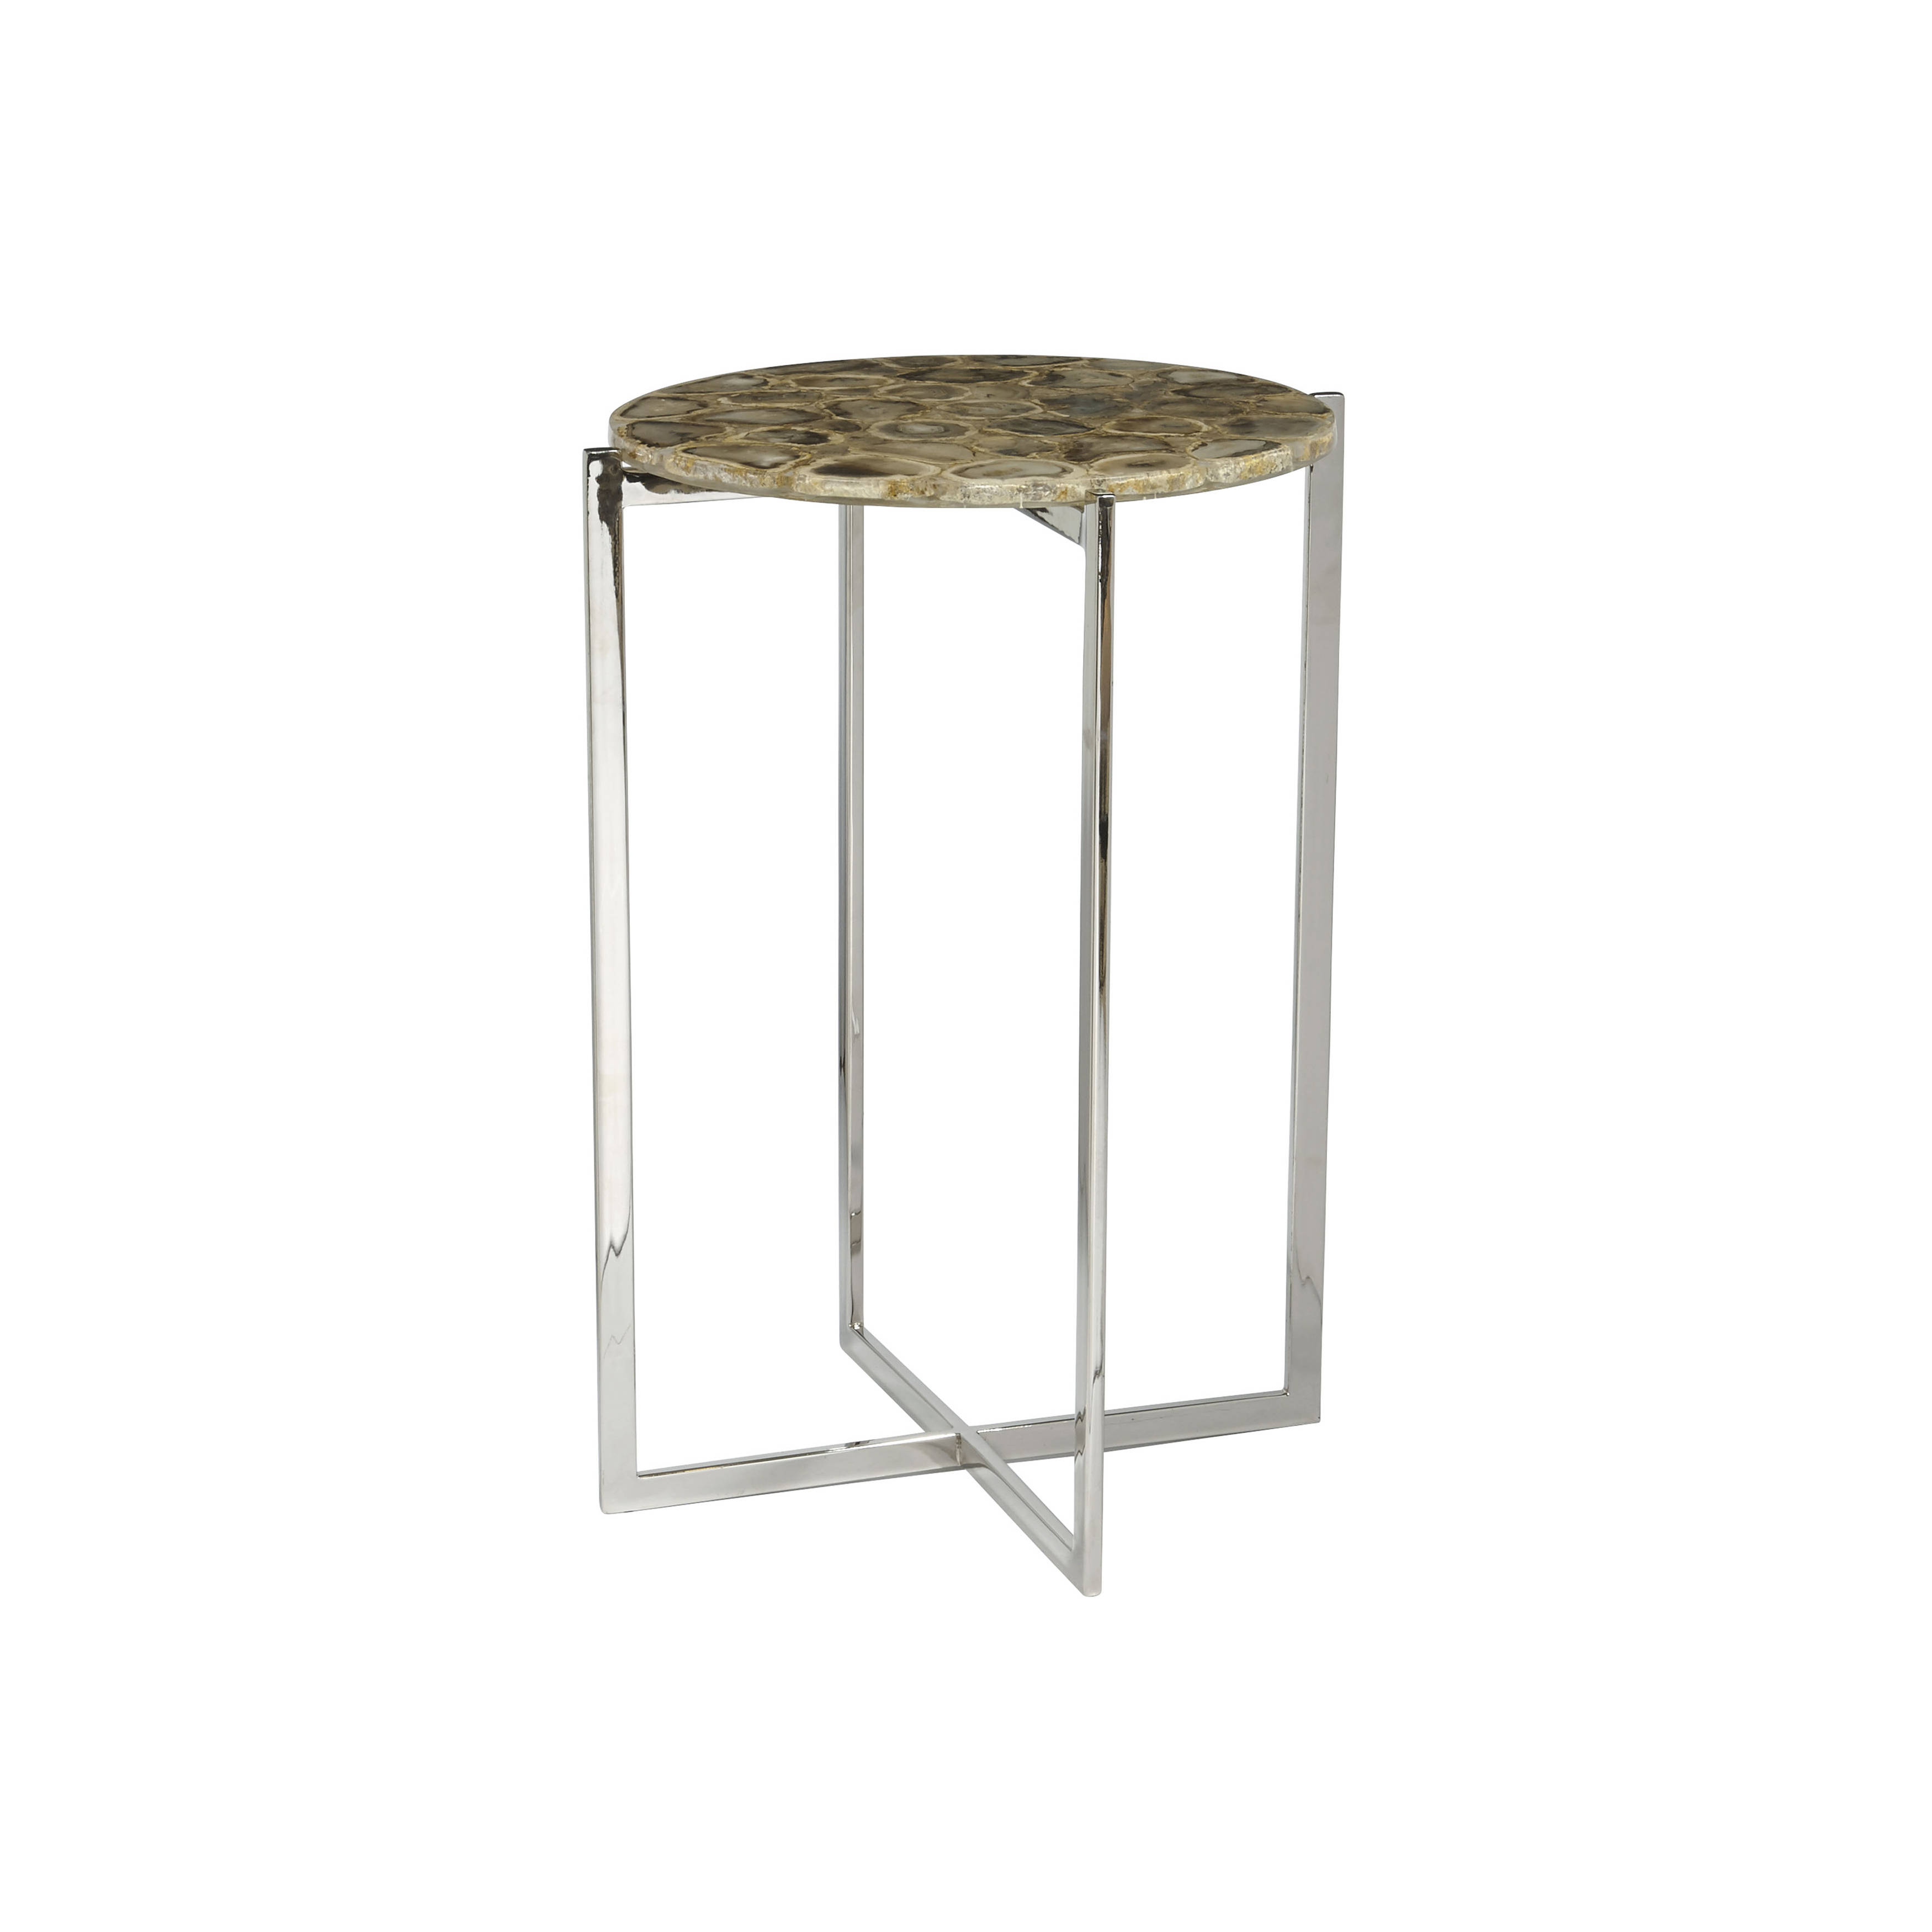 home meridian linden agate accent table the classy click enlarge black round patio white sliding barn door large side marble coffee with built tables simple plans pottery tilting